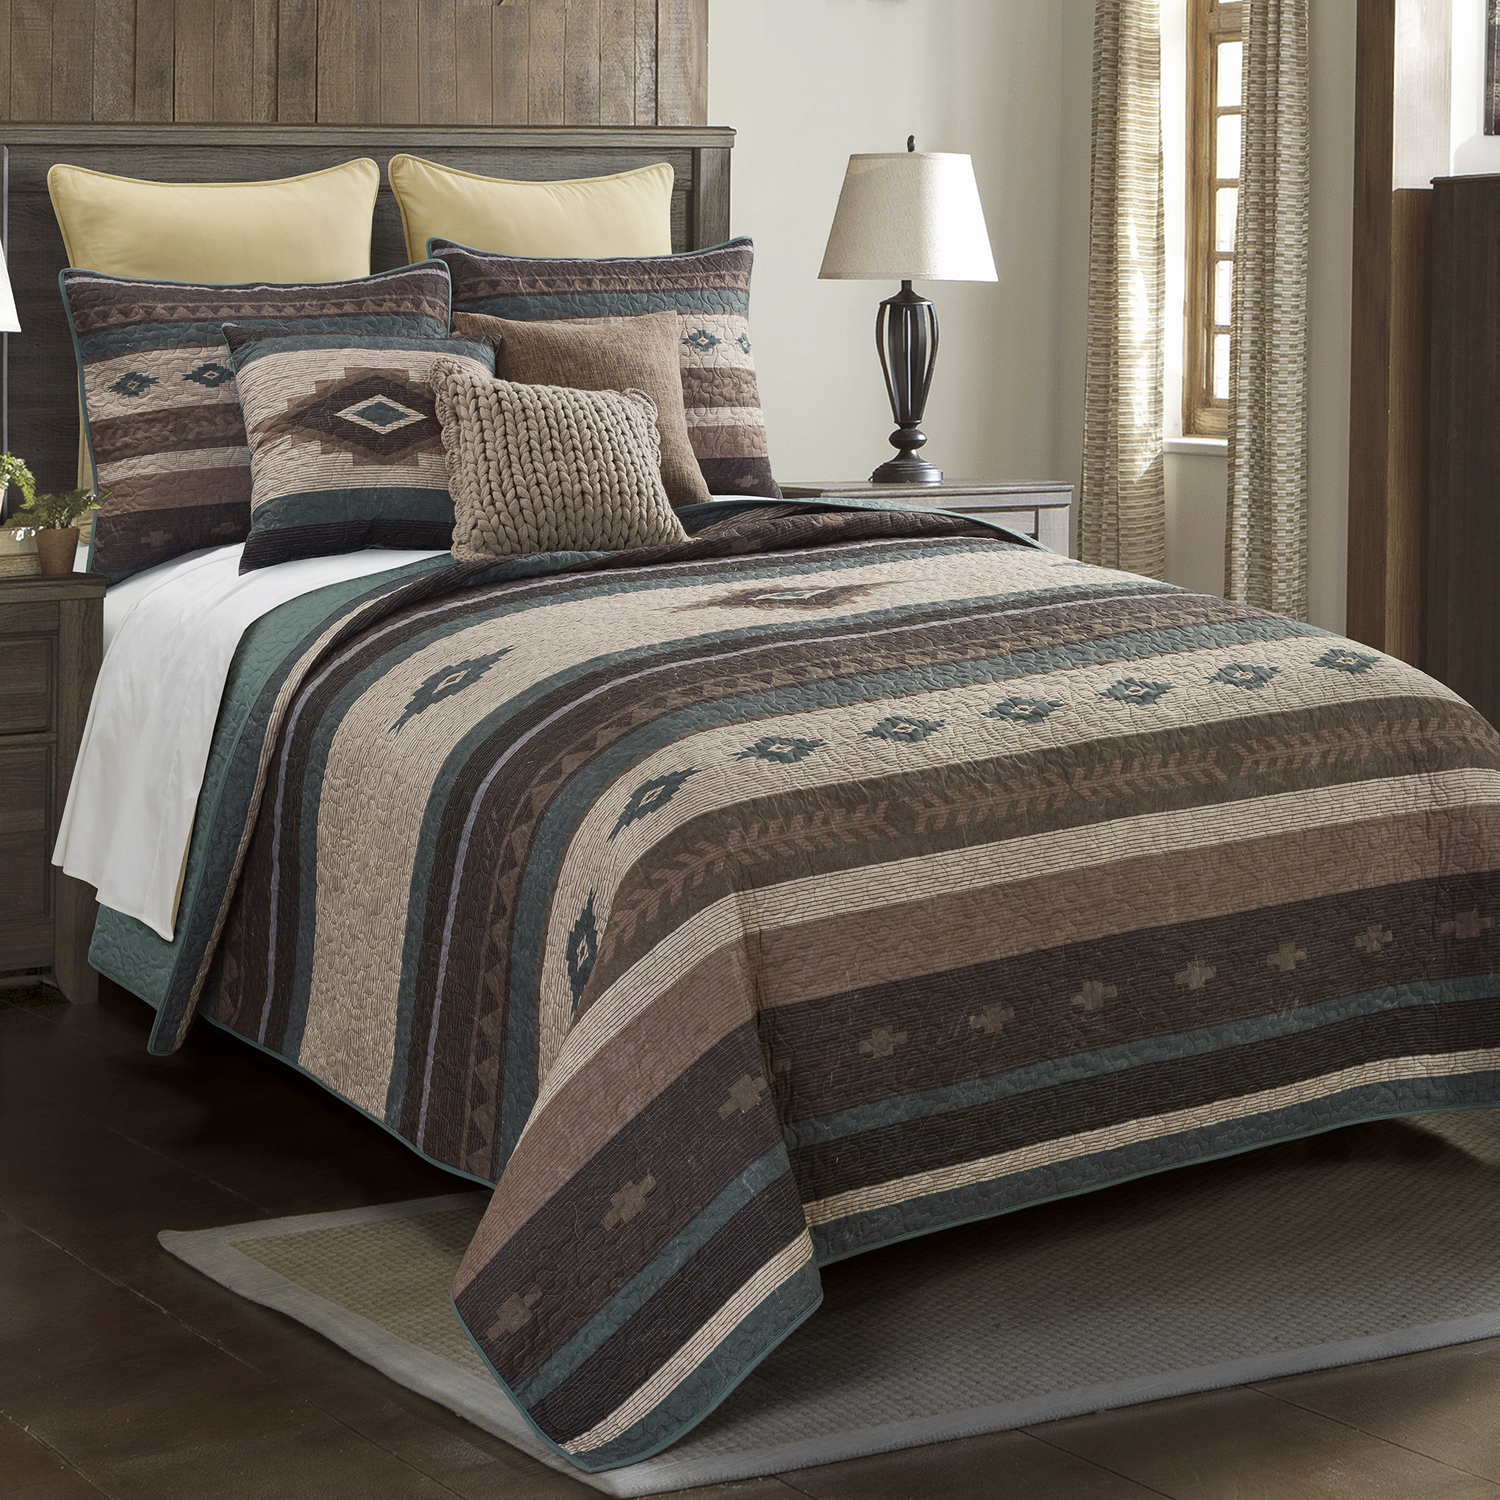 Sierra Vista by Donna Sharp Quilts